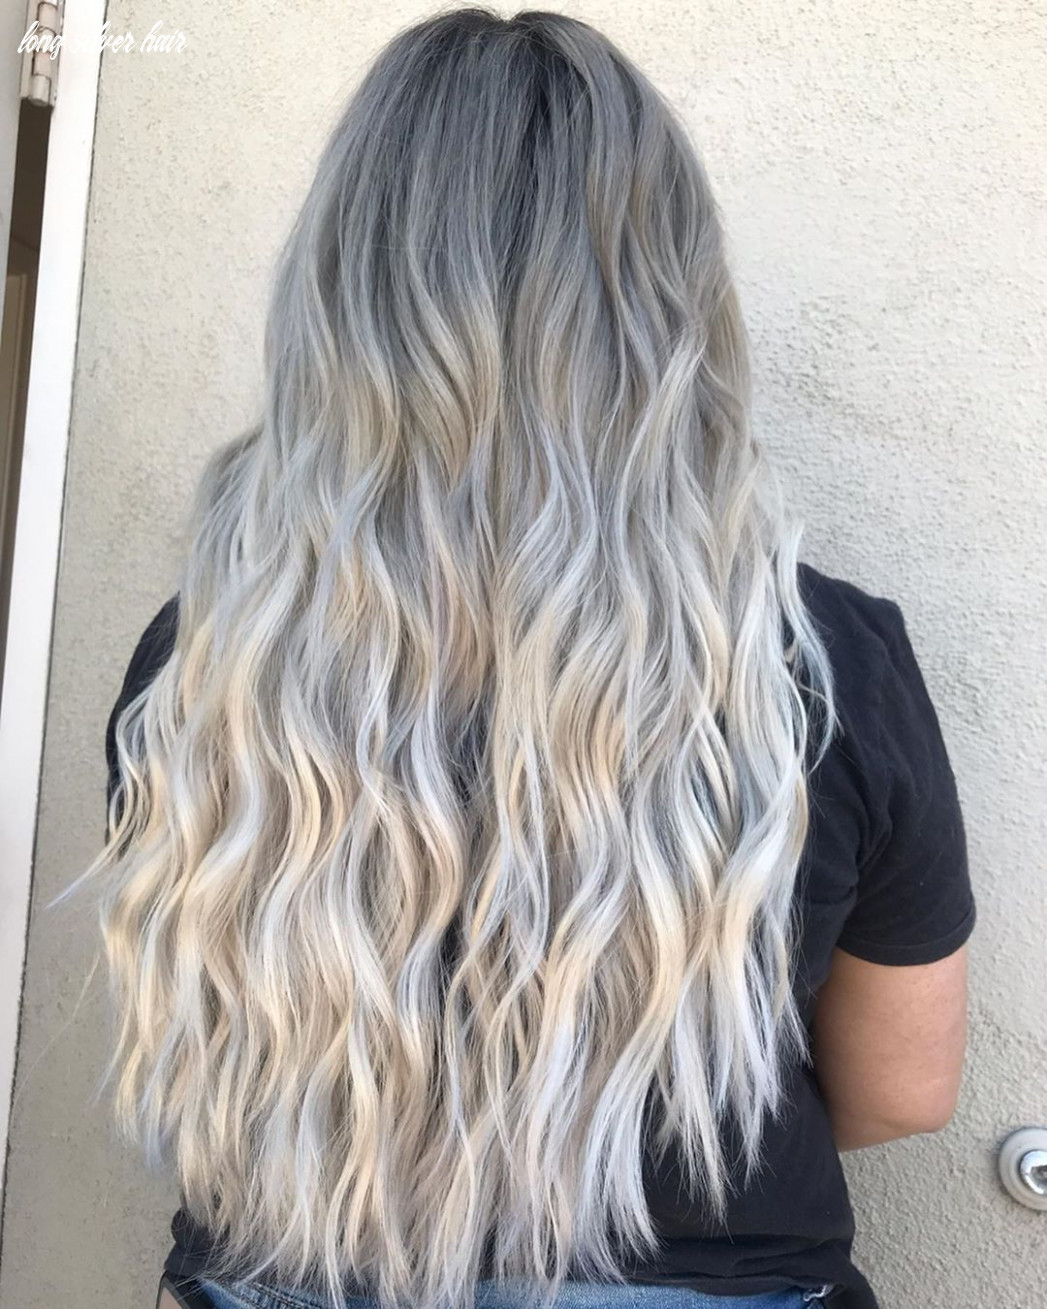 11 silver hair color ideas & 11 trends: highlights, styles and more long silver hair